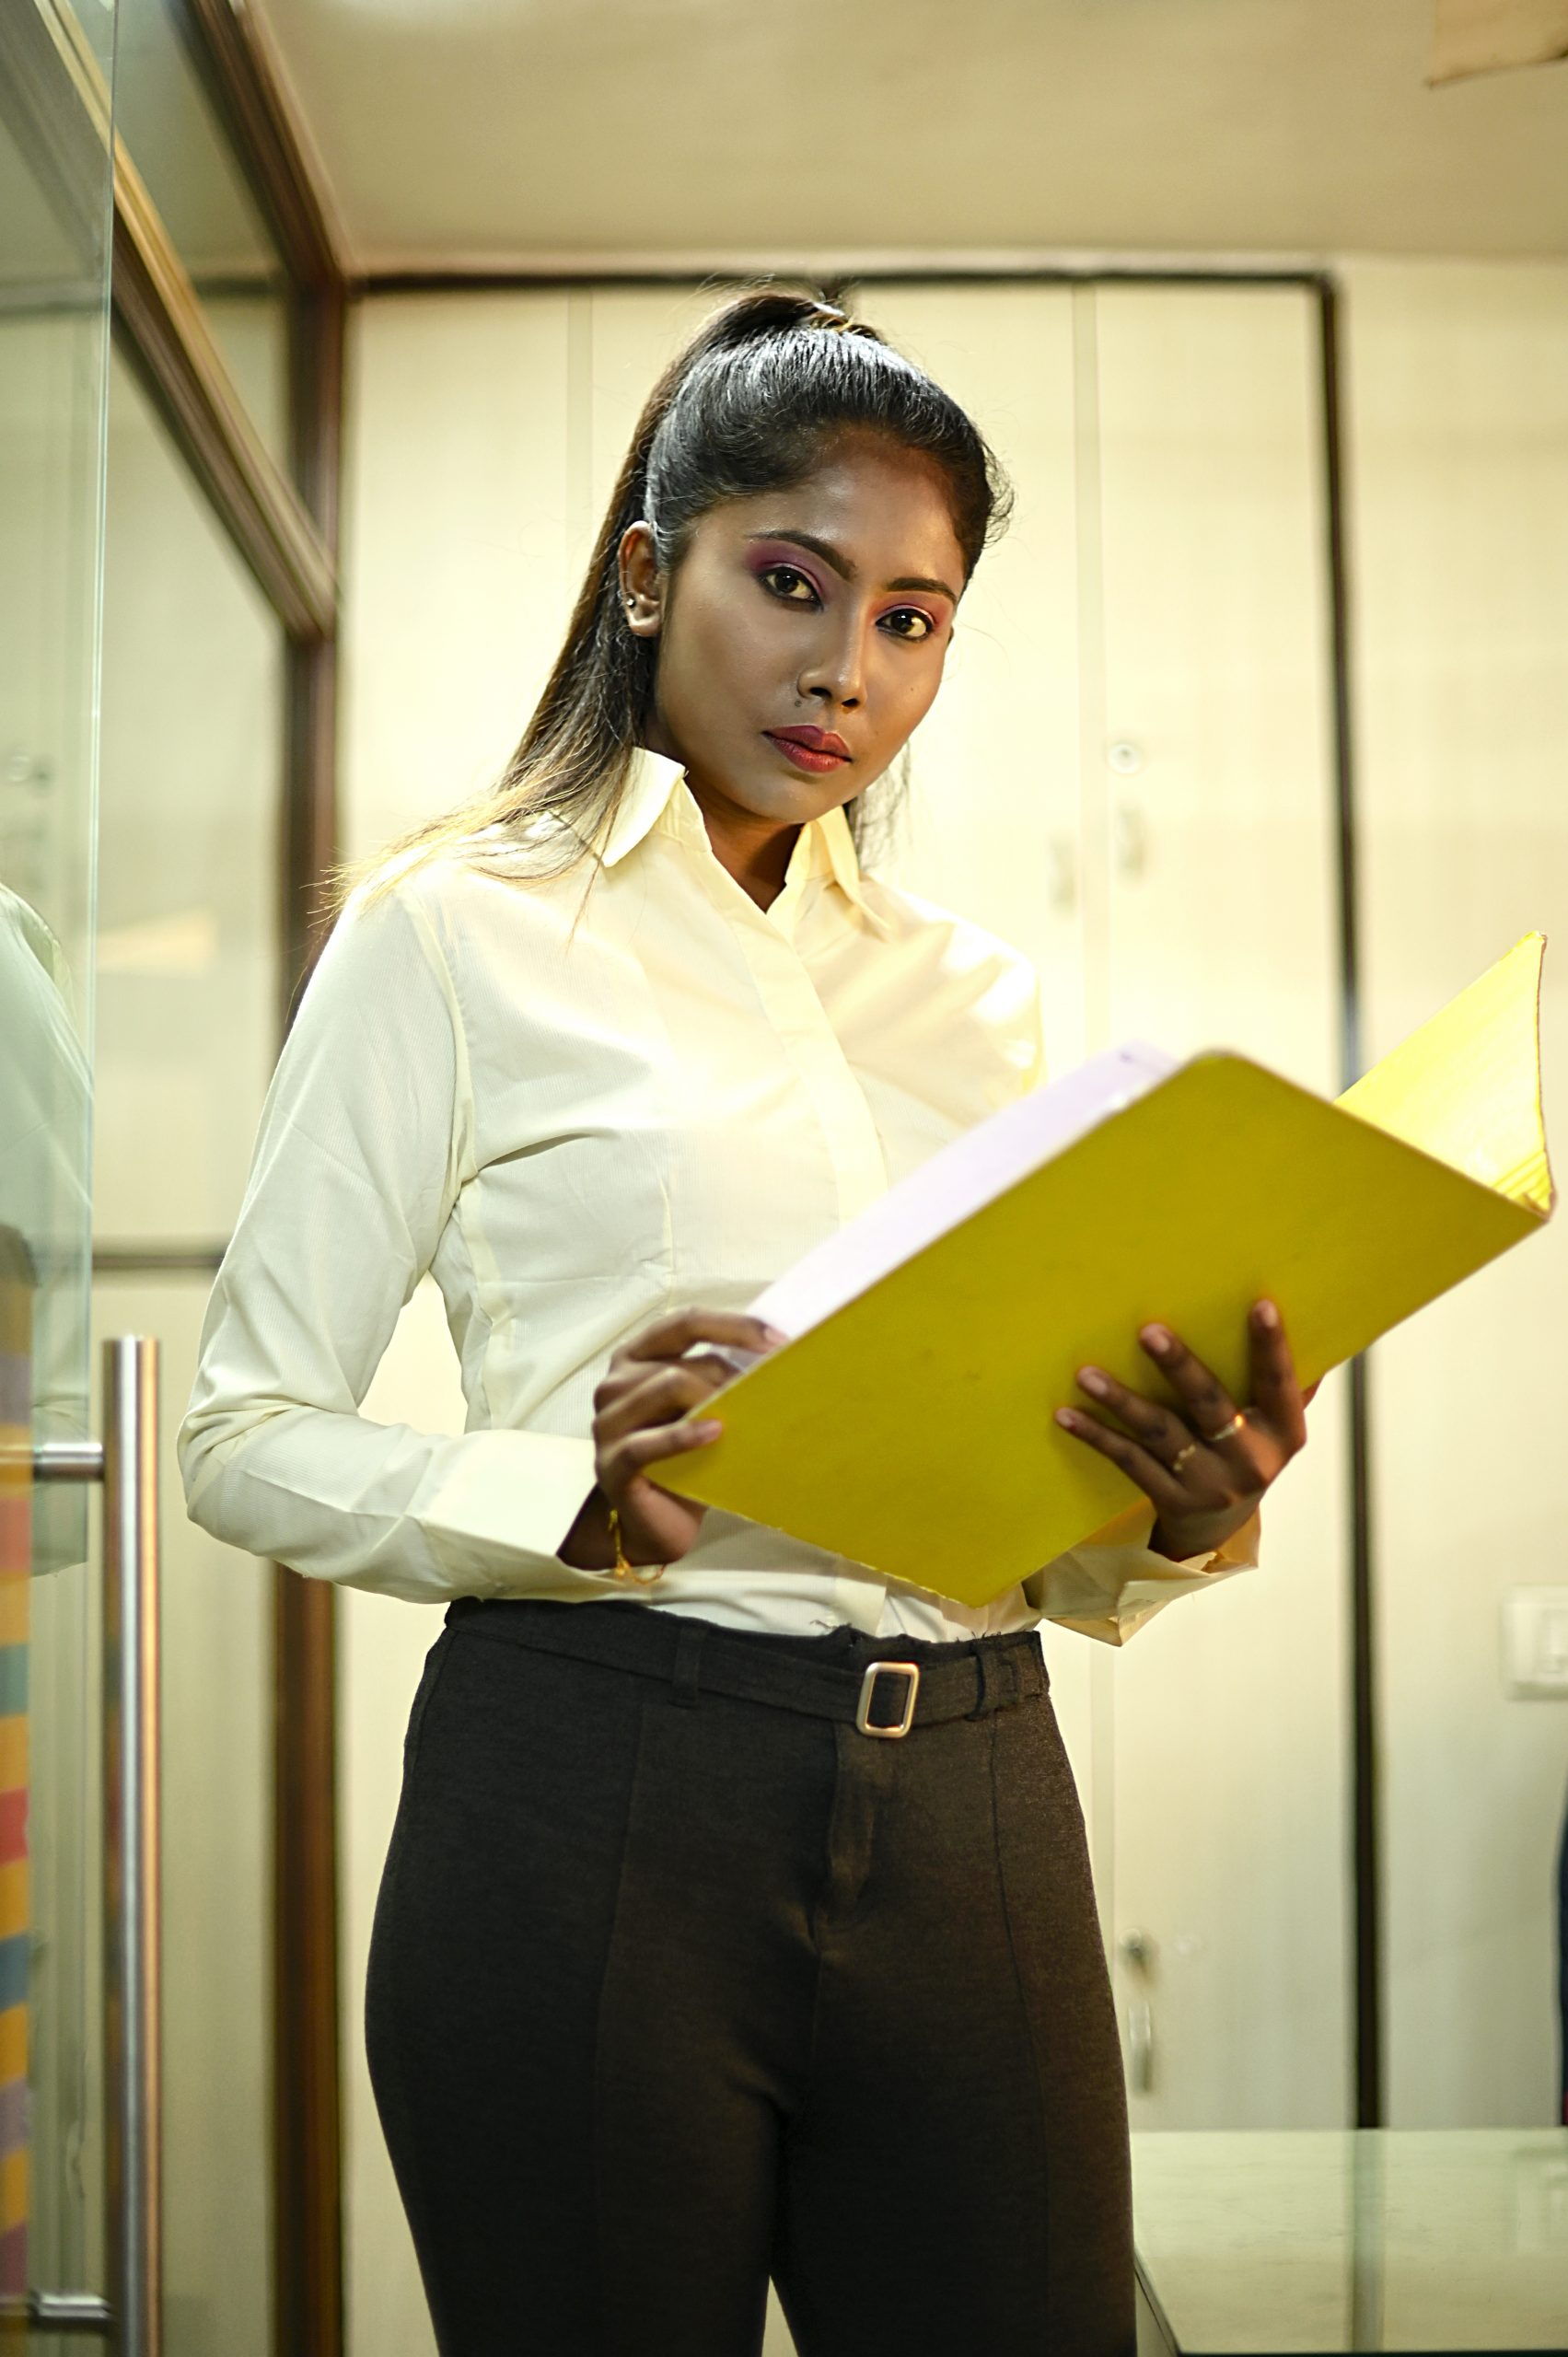 A girl in office